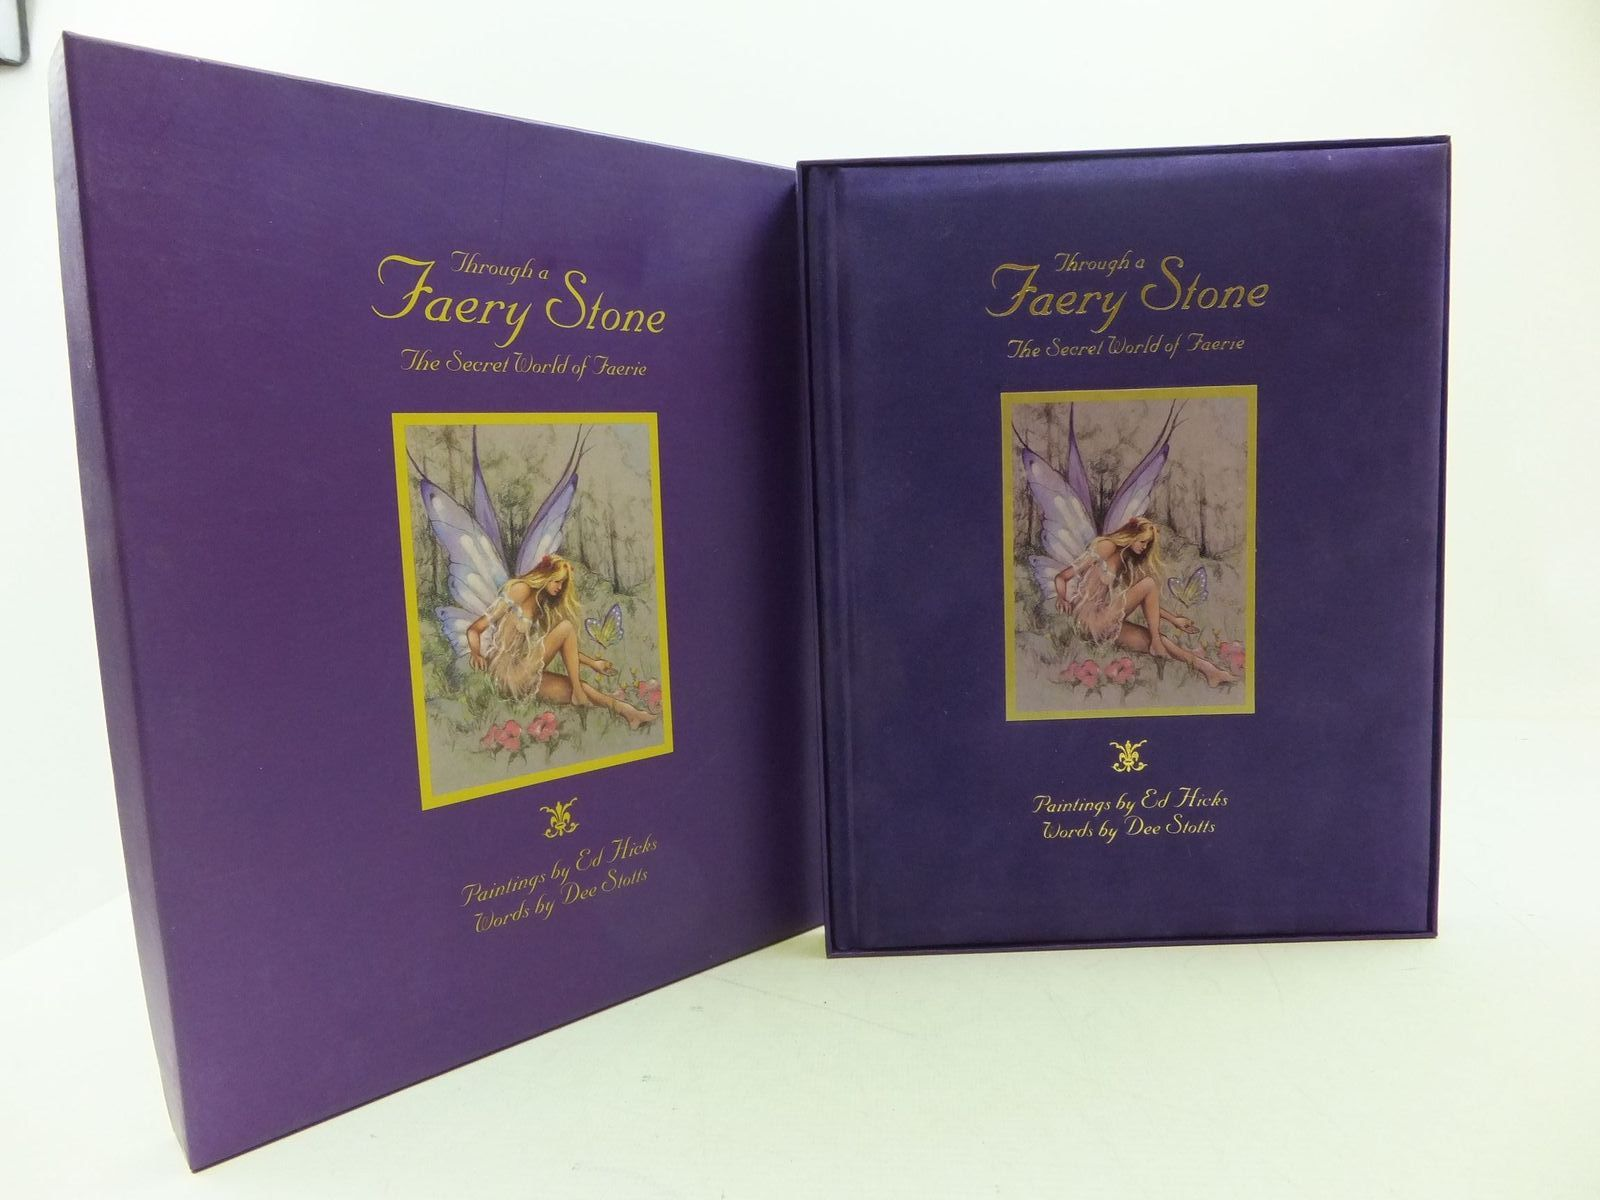 Photo of THROUGH A FAERY STONE THE SECRET WORLD OF THE FAERIE written by Stotts, Dee illustrated by Hicks, Ed. published by Aappl Artists' and Photographers' press Ltd. (STOCK CODE: 1108713)  for sale by Stella & Rose's Books